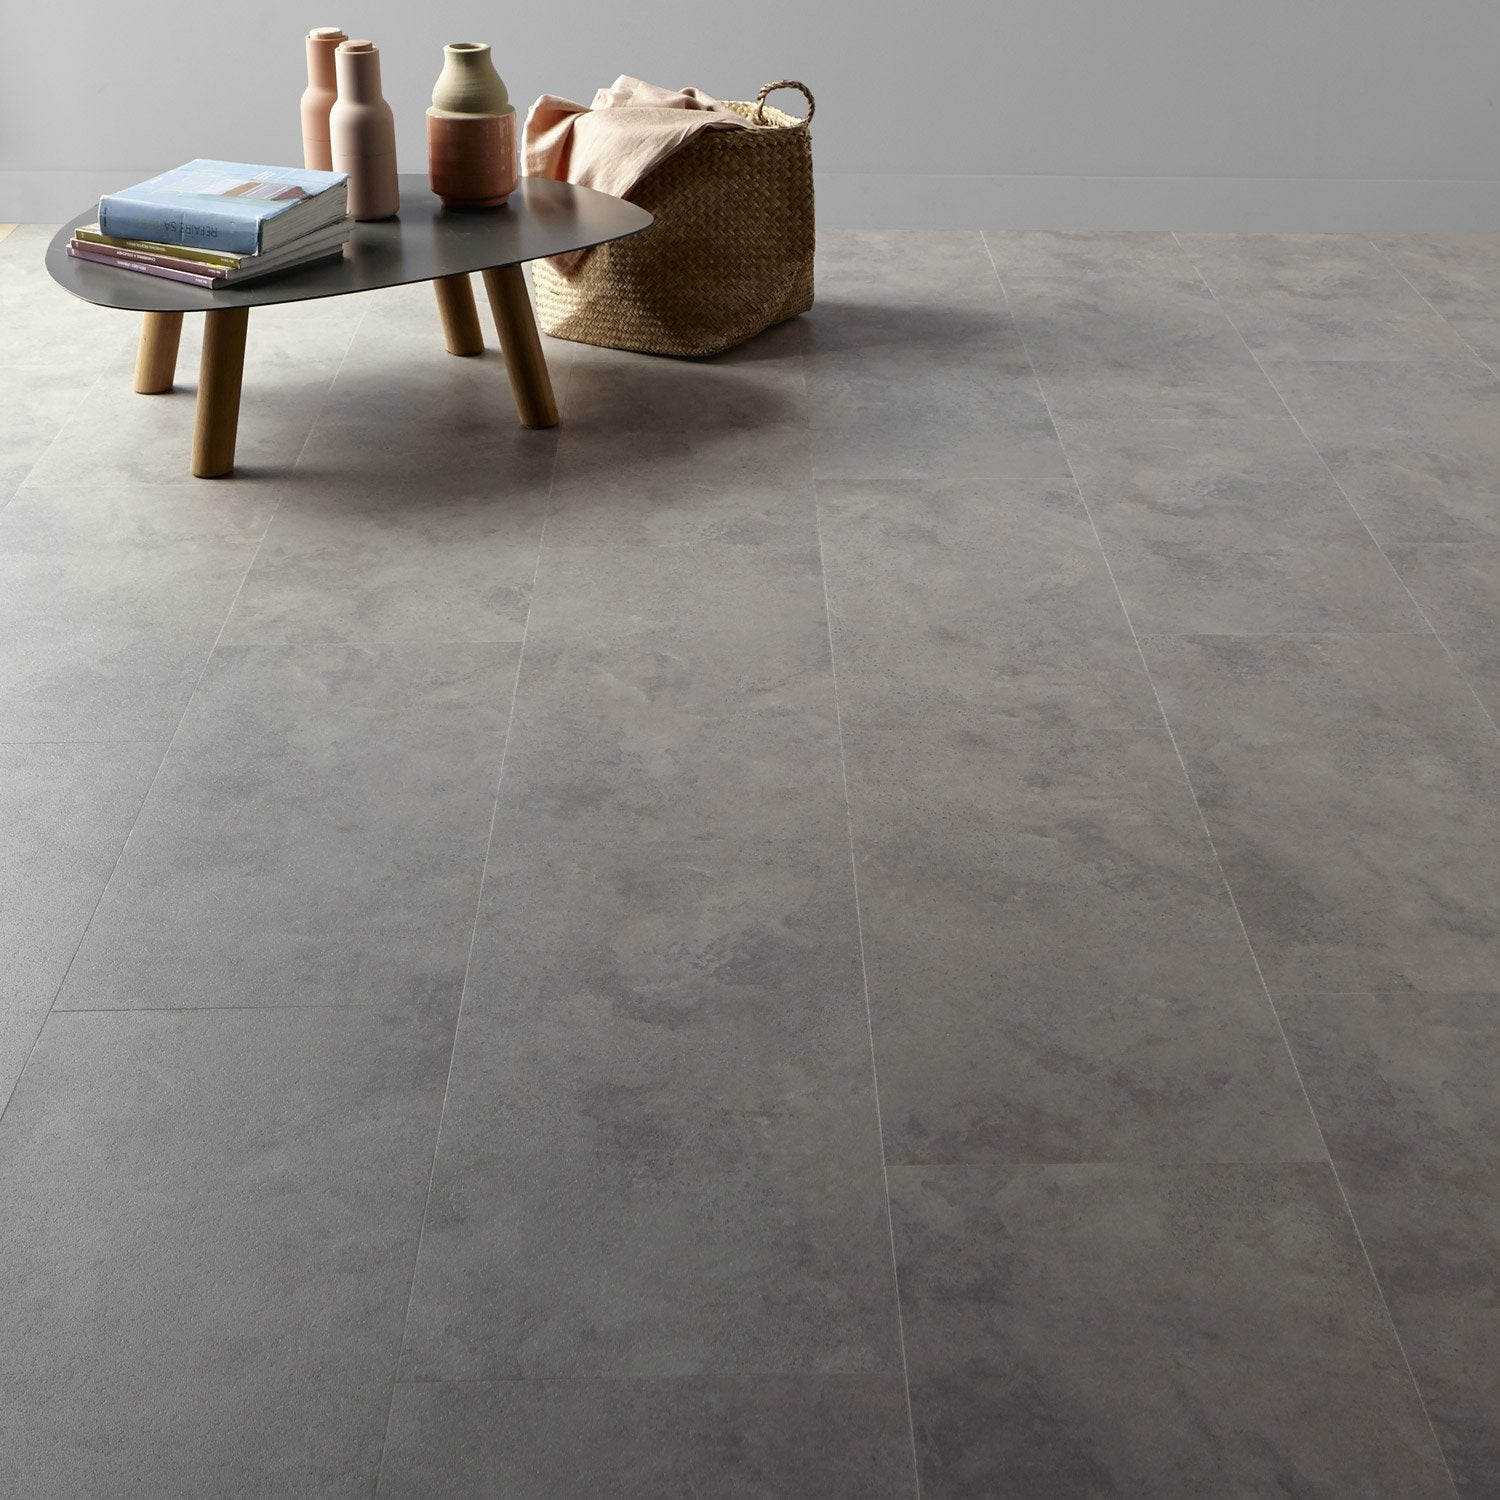 Dalle pvc clipsable taupe flagstone senso lock gerflor for Dalles pvc clipsables gerflor